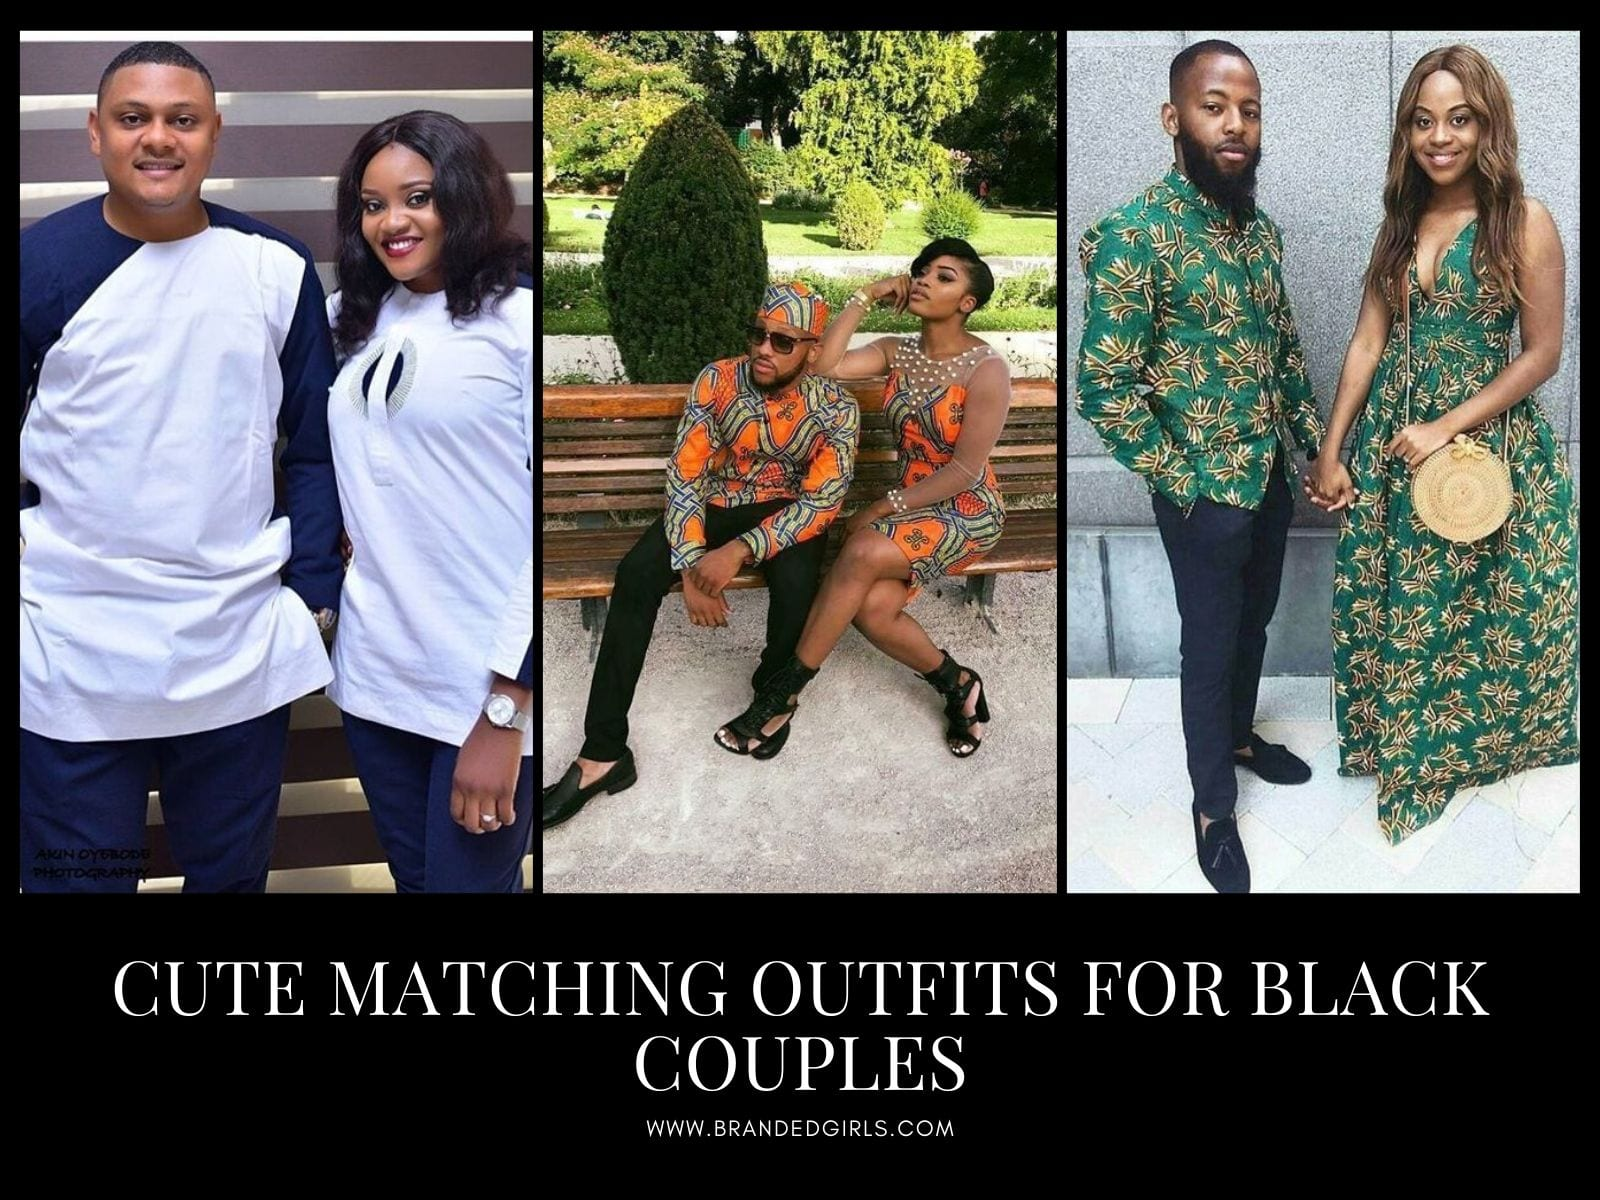 Cutest-Matching-Outfits-For-Black-Couples 13 Cutest Matching Outfits For Black Couples